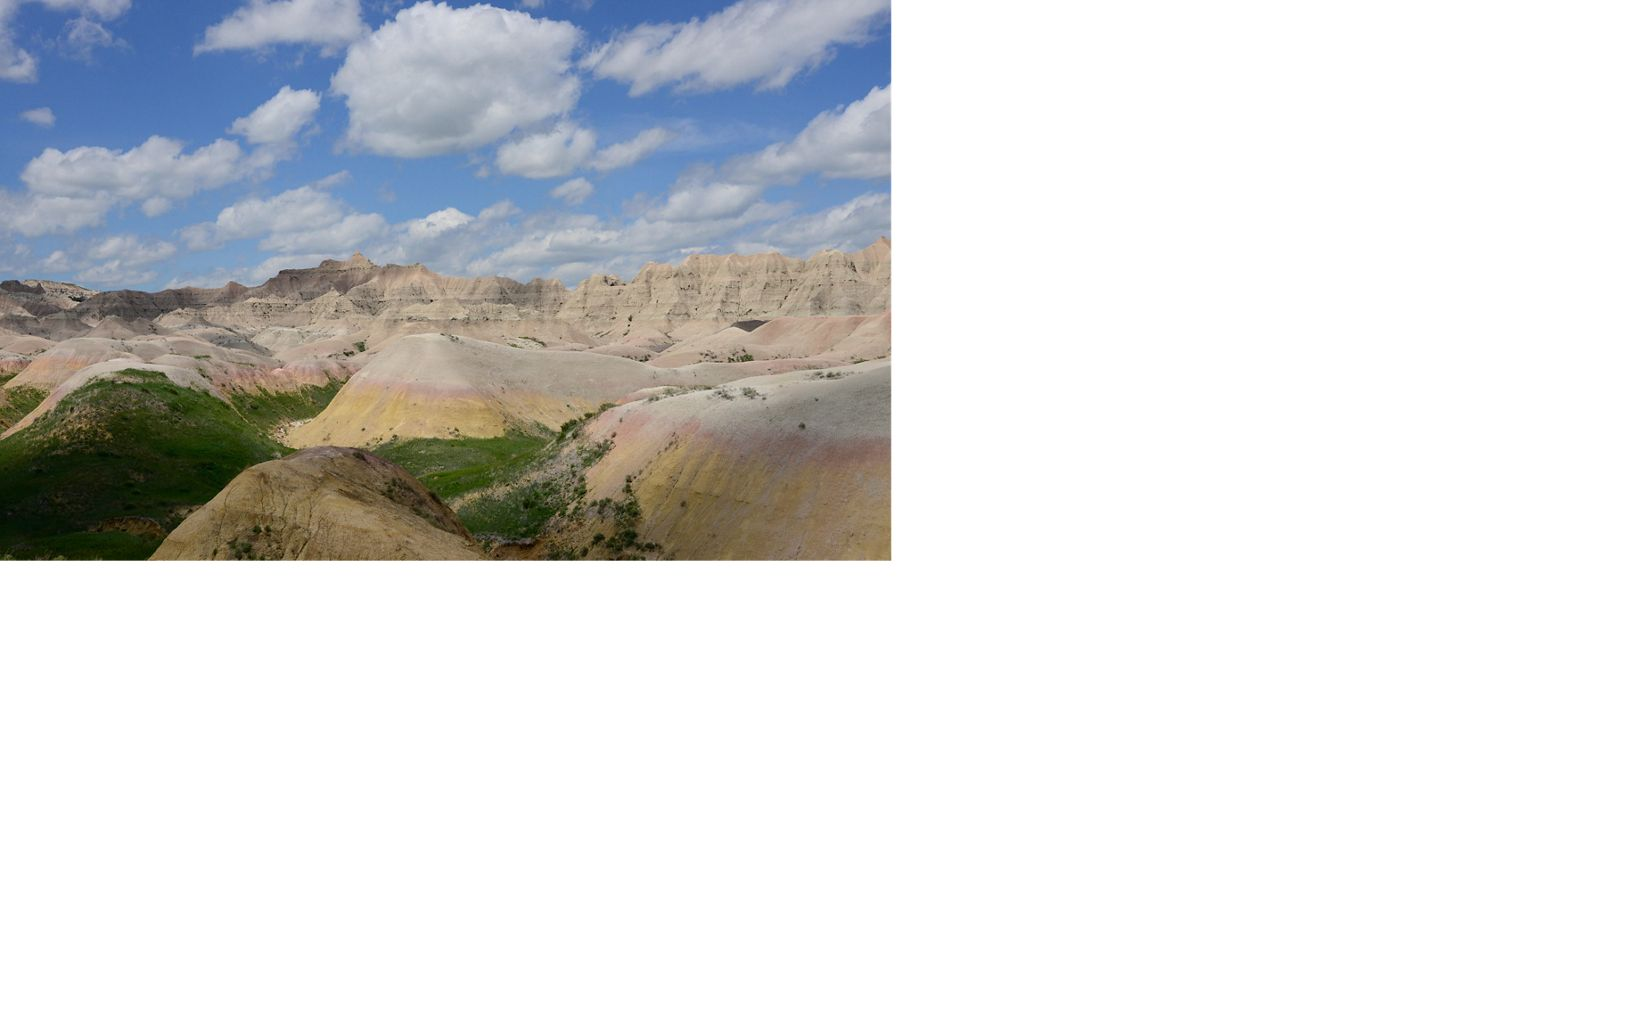 Badlands landscape and cloud shadows.